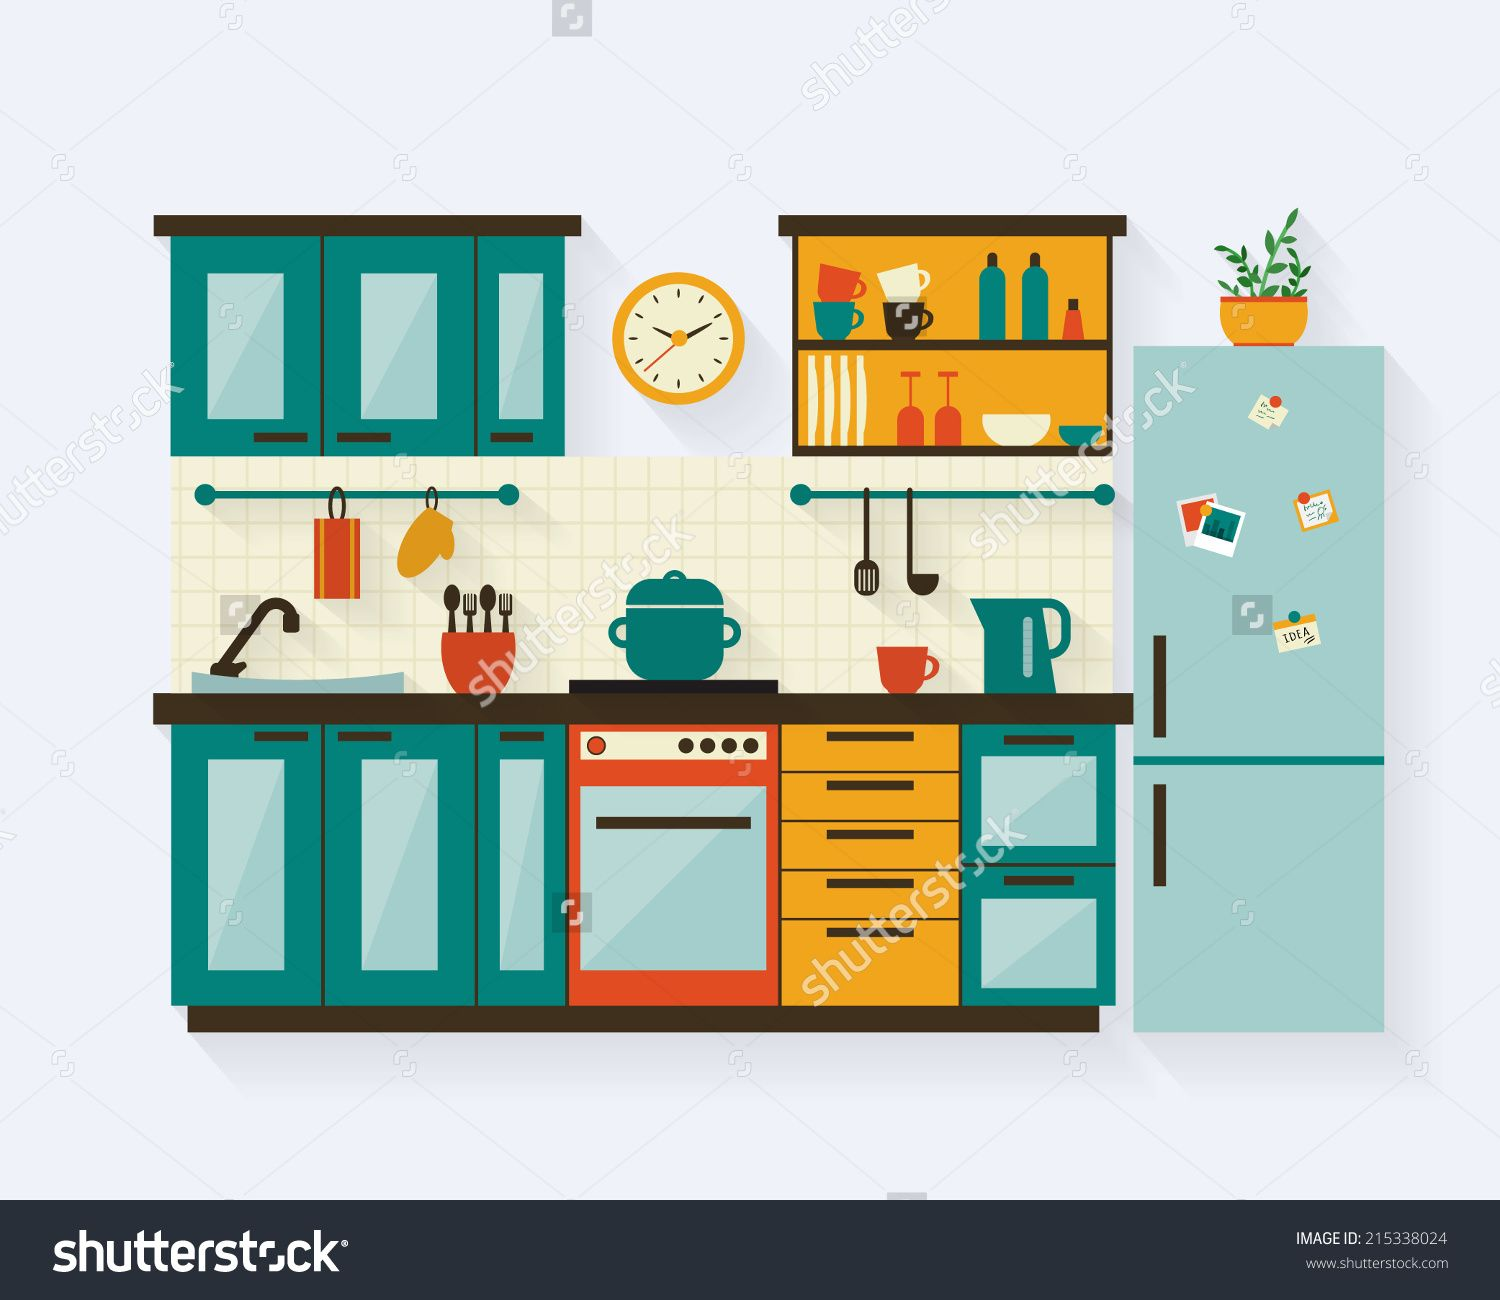 Cartoon Kitchen Furniture: Kitchen With Furniture And Long Shadows. Flat Style Vector